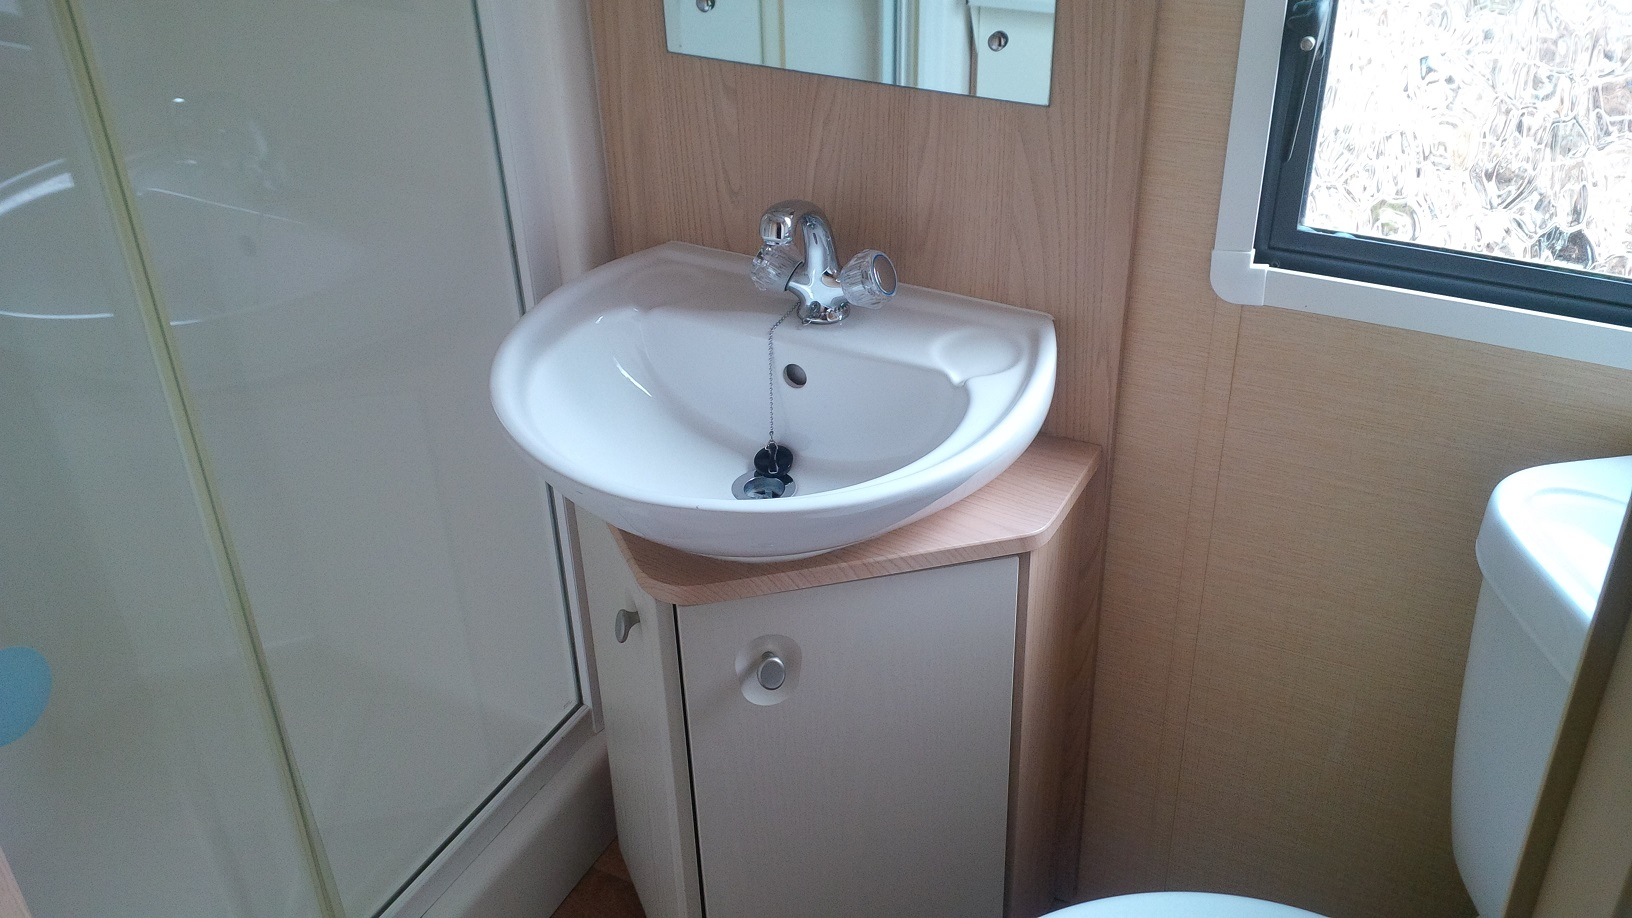 Willerby Westmorland: Used Static Caravans and Holiday Homes for sale, Langley Moor, Durham Image 4